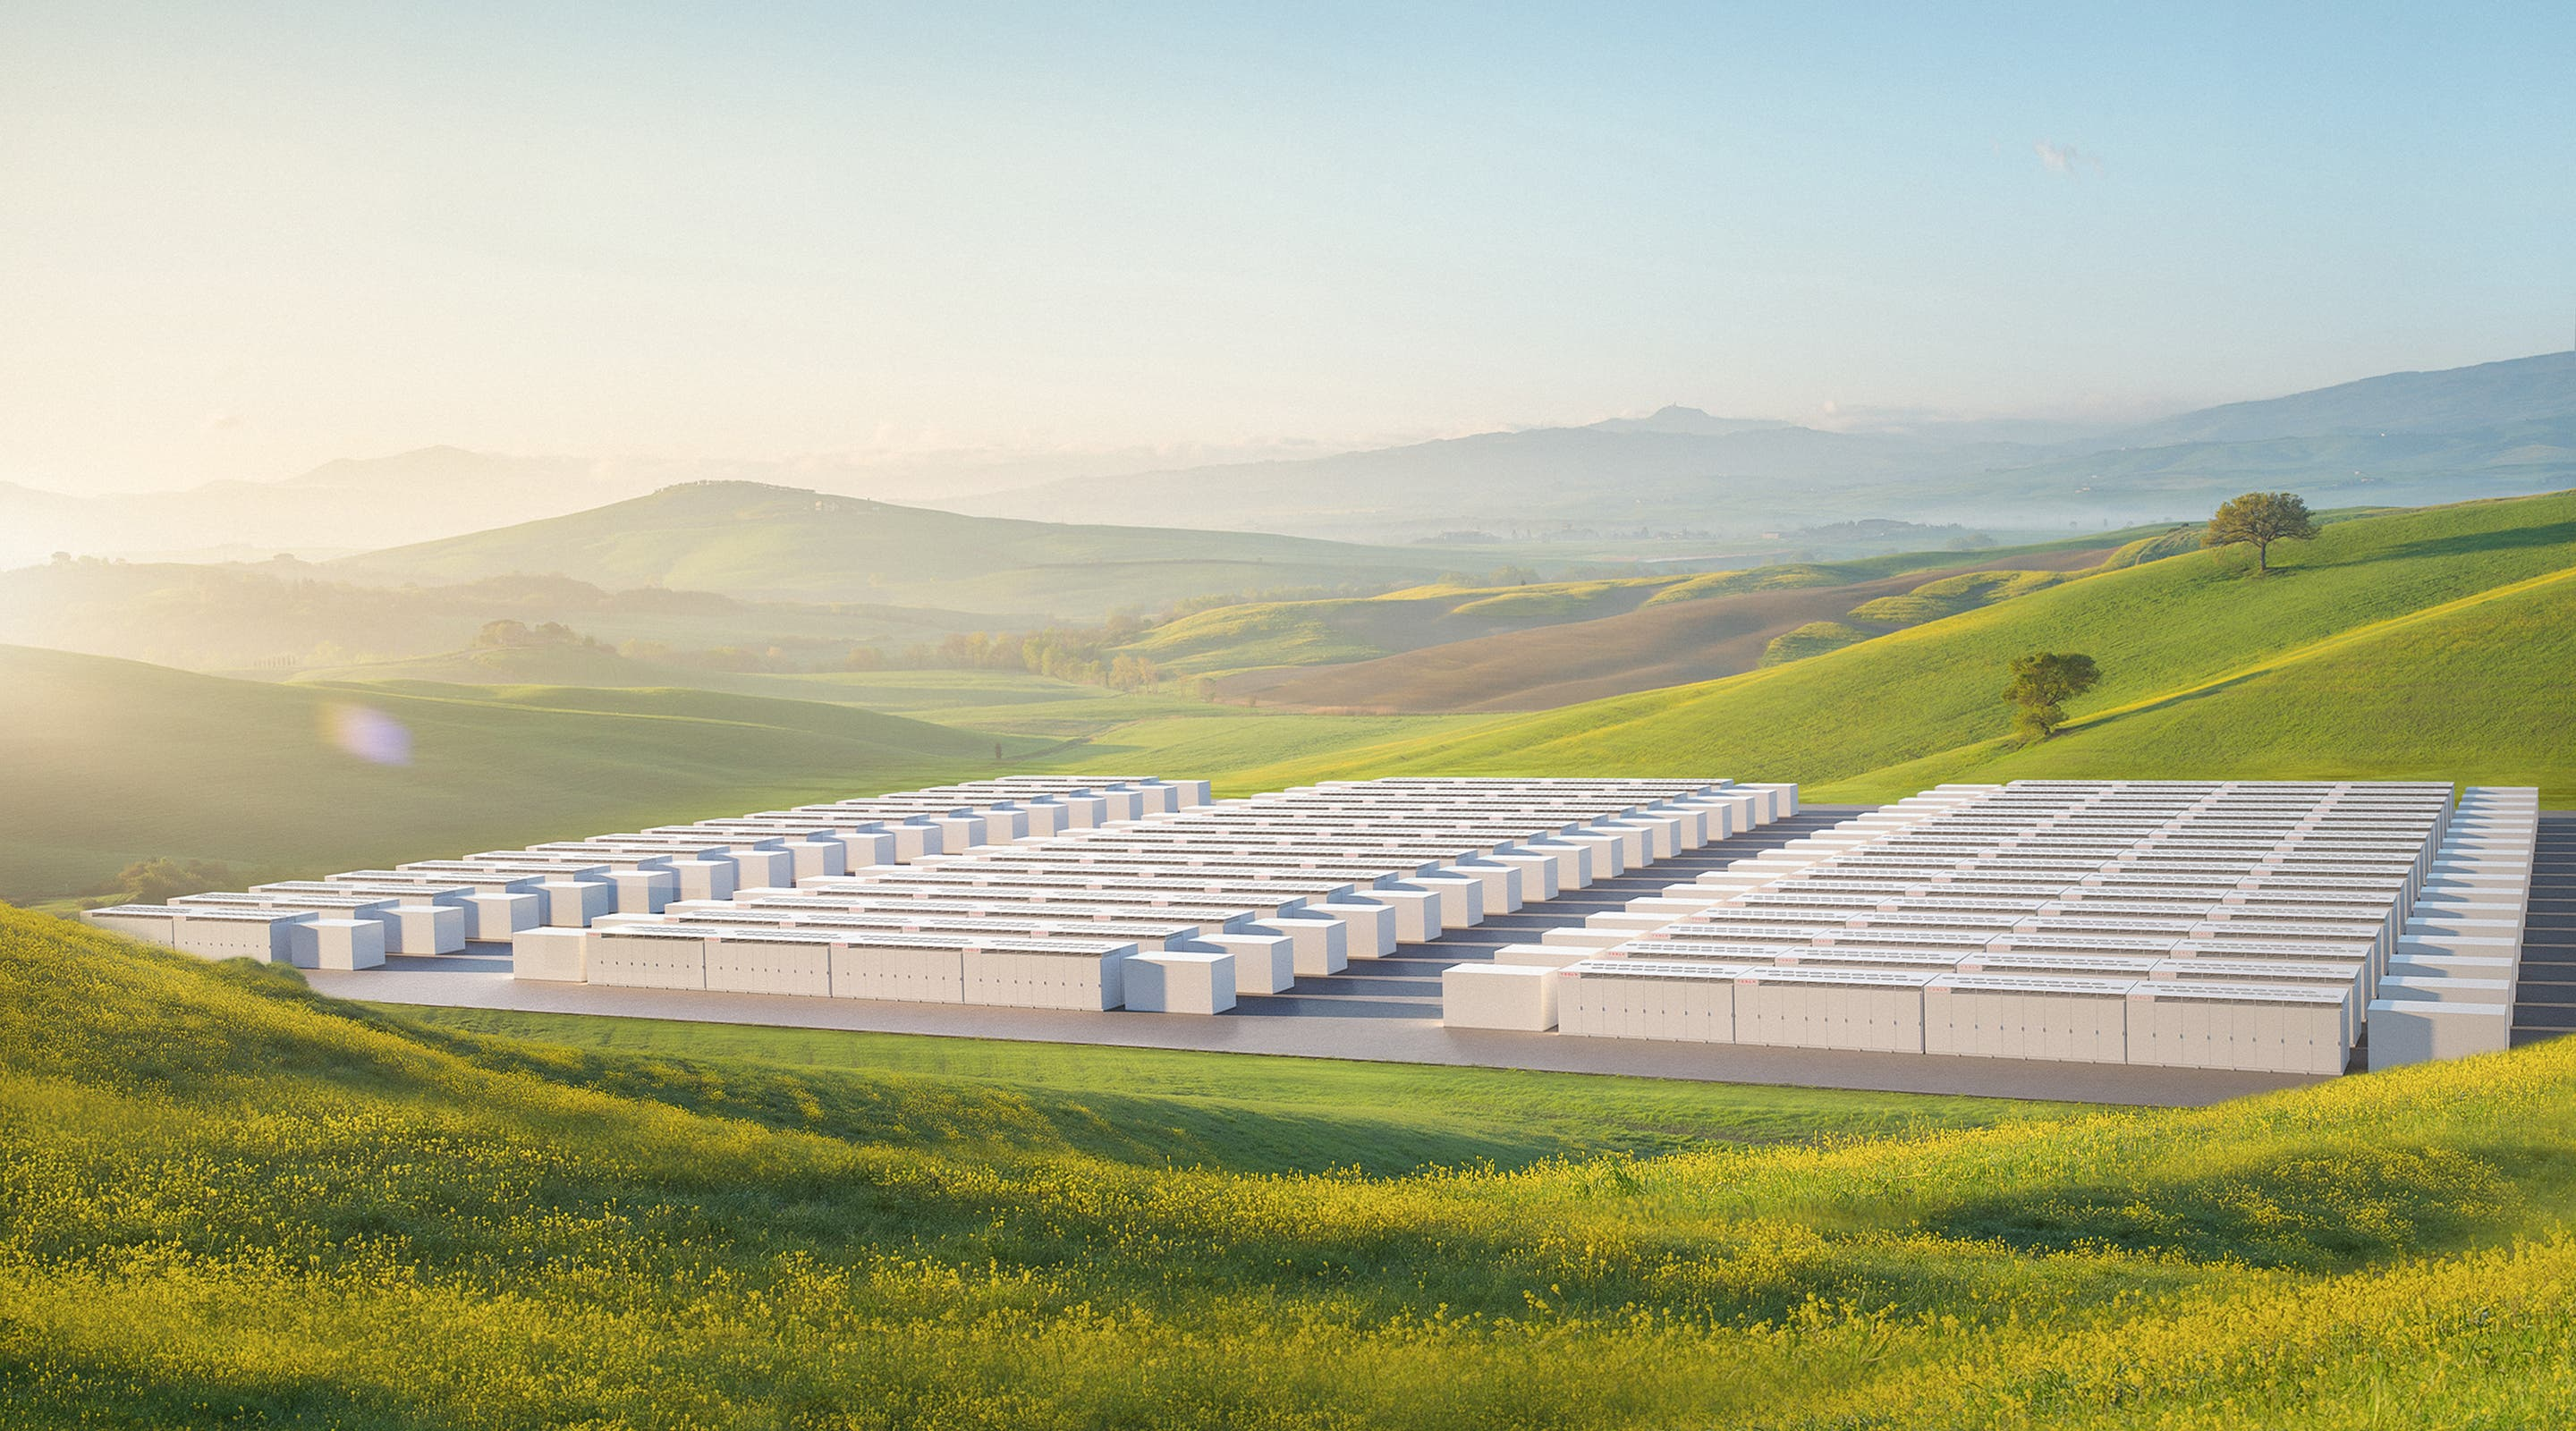 Tesla's Megapack is a battery built for the electrical grid